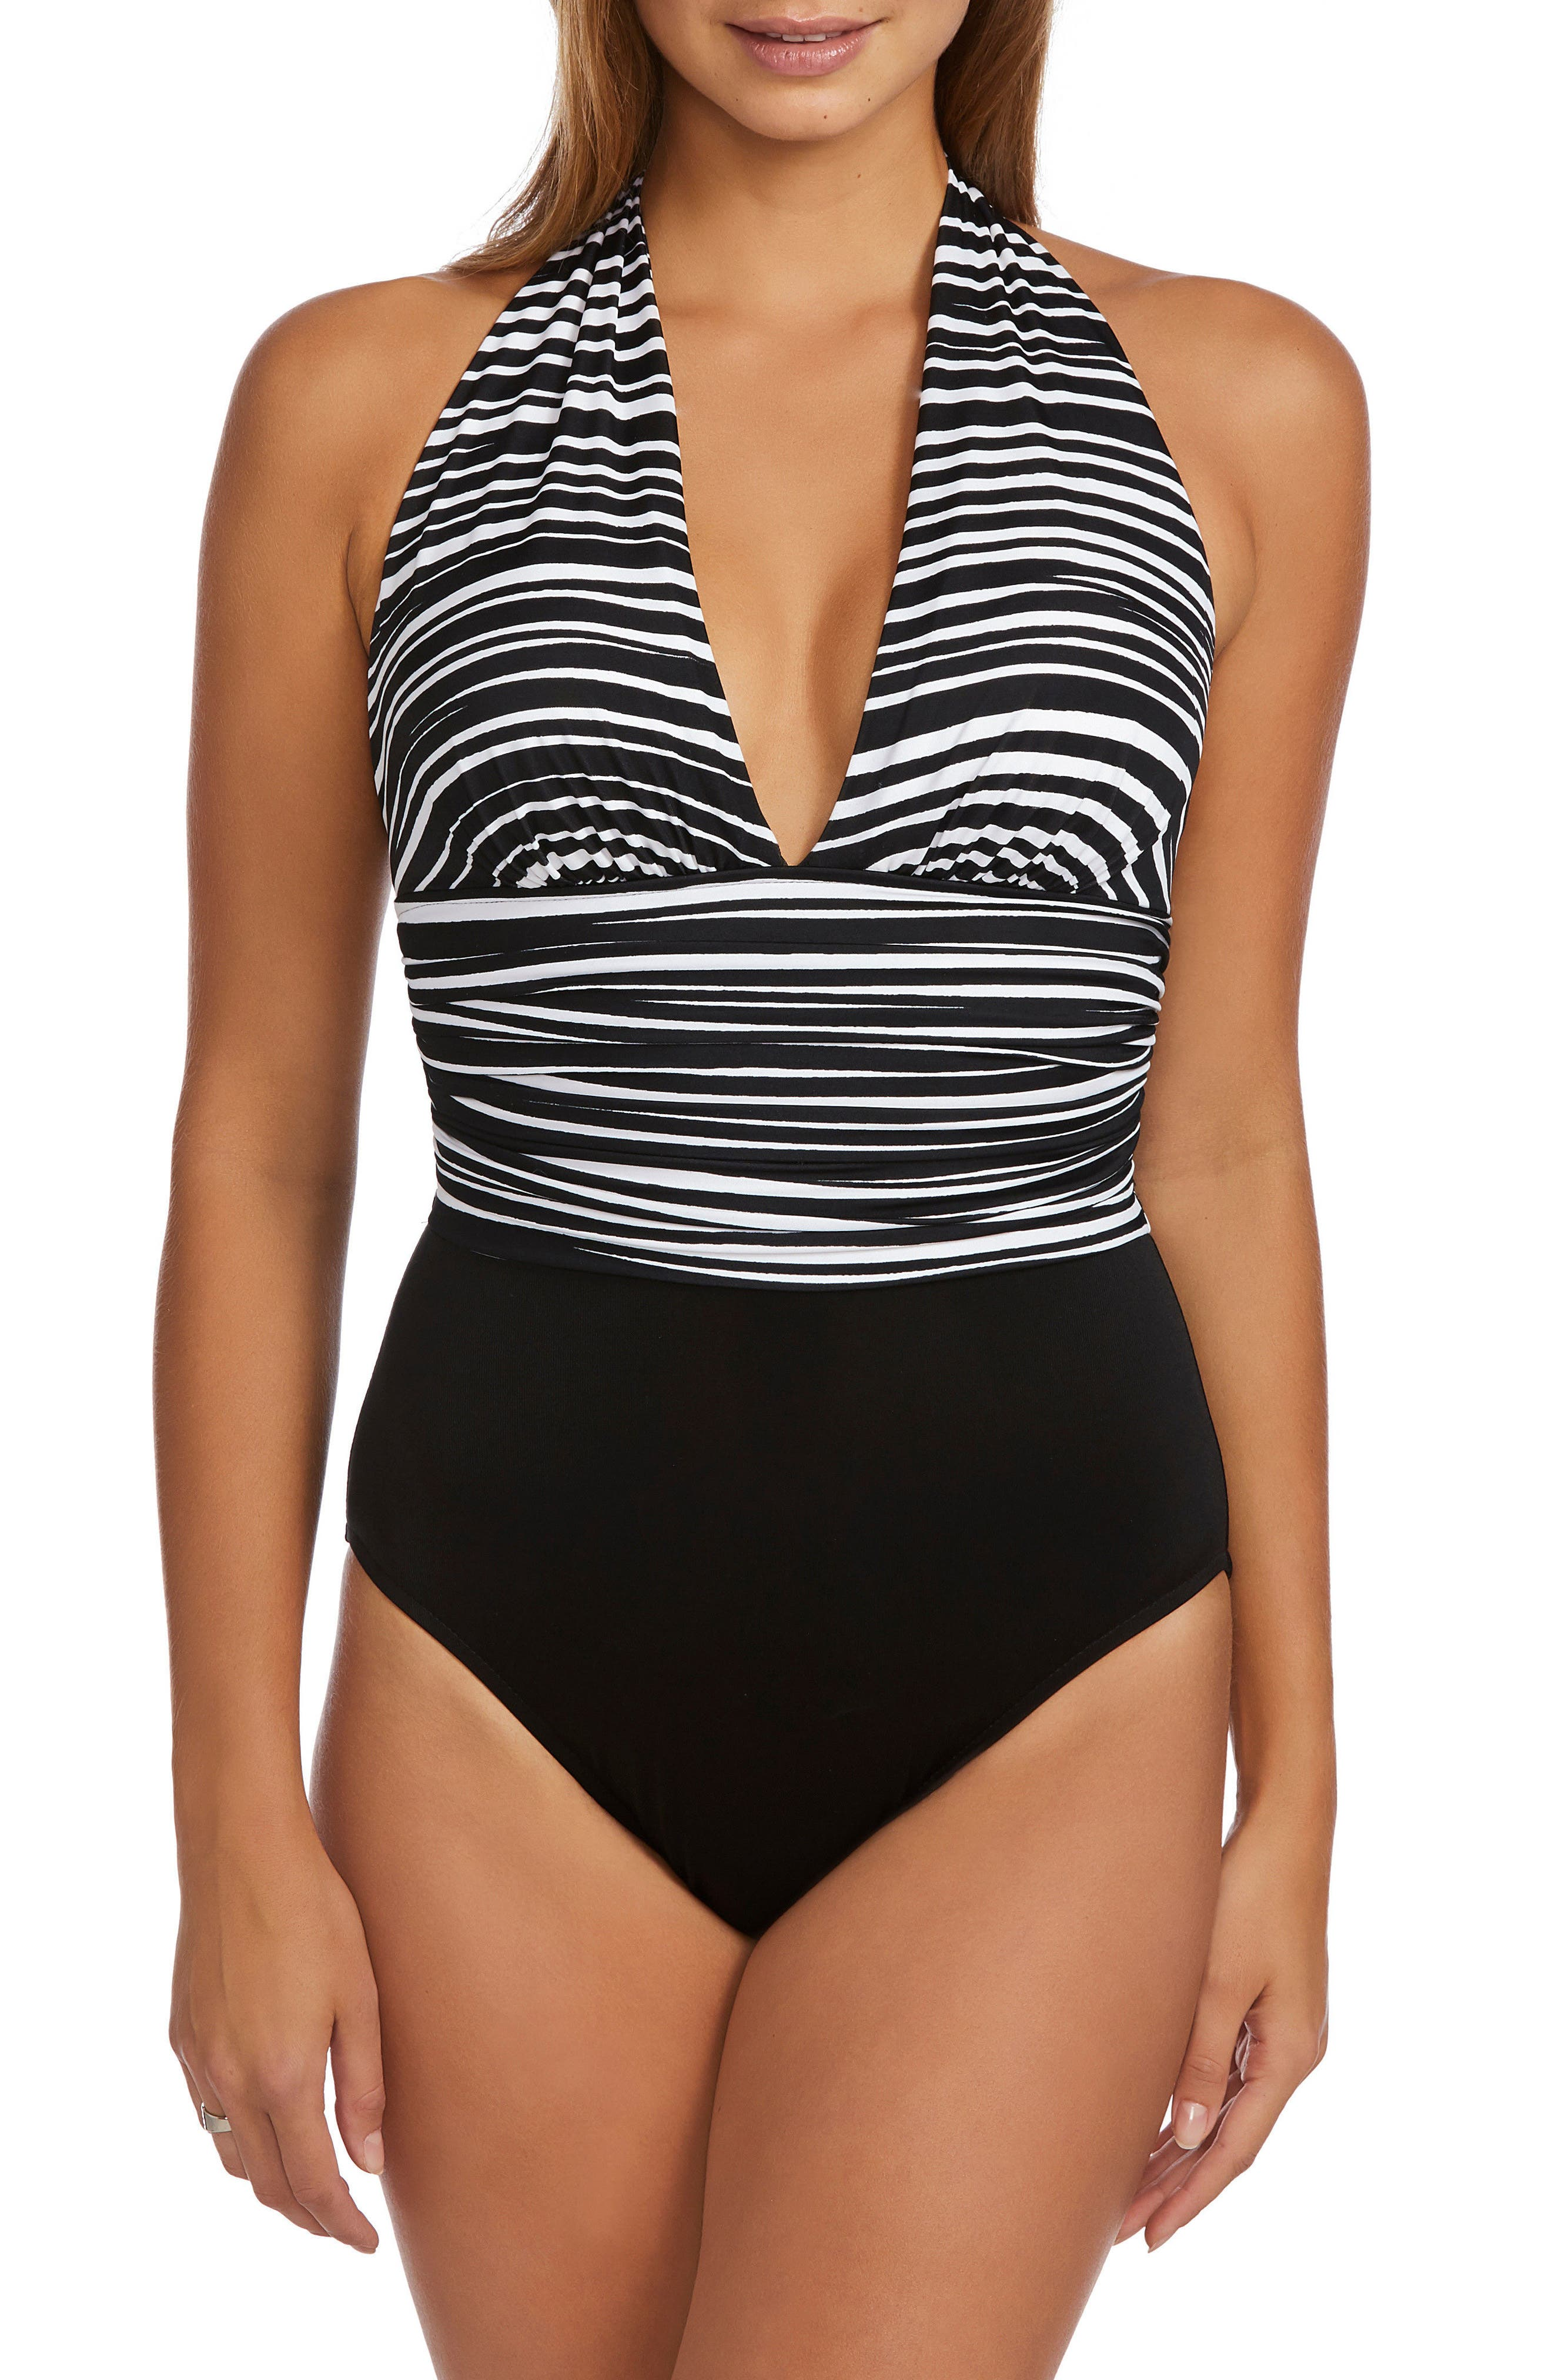 Yves Clean Lines One-Piece Swimsuit,                             Main thumbnail 1, color,                             004